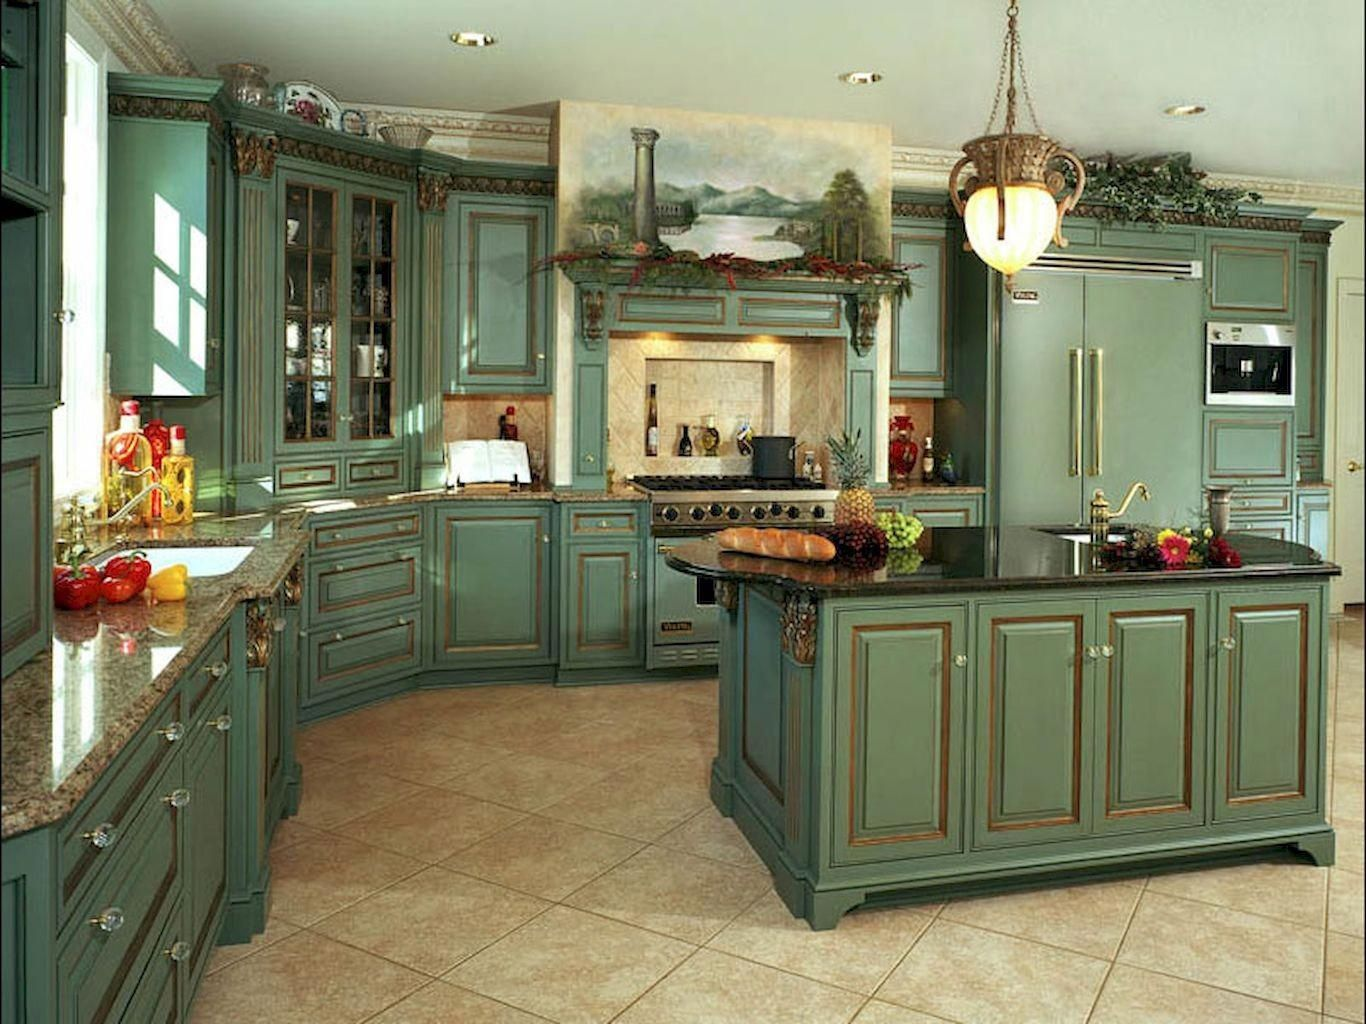 44 unique and elegant french county kitchen decor ideas kitchens kitchendecor on kitchen ideas colorful id=93190